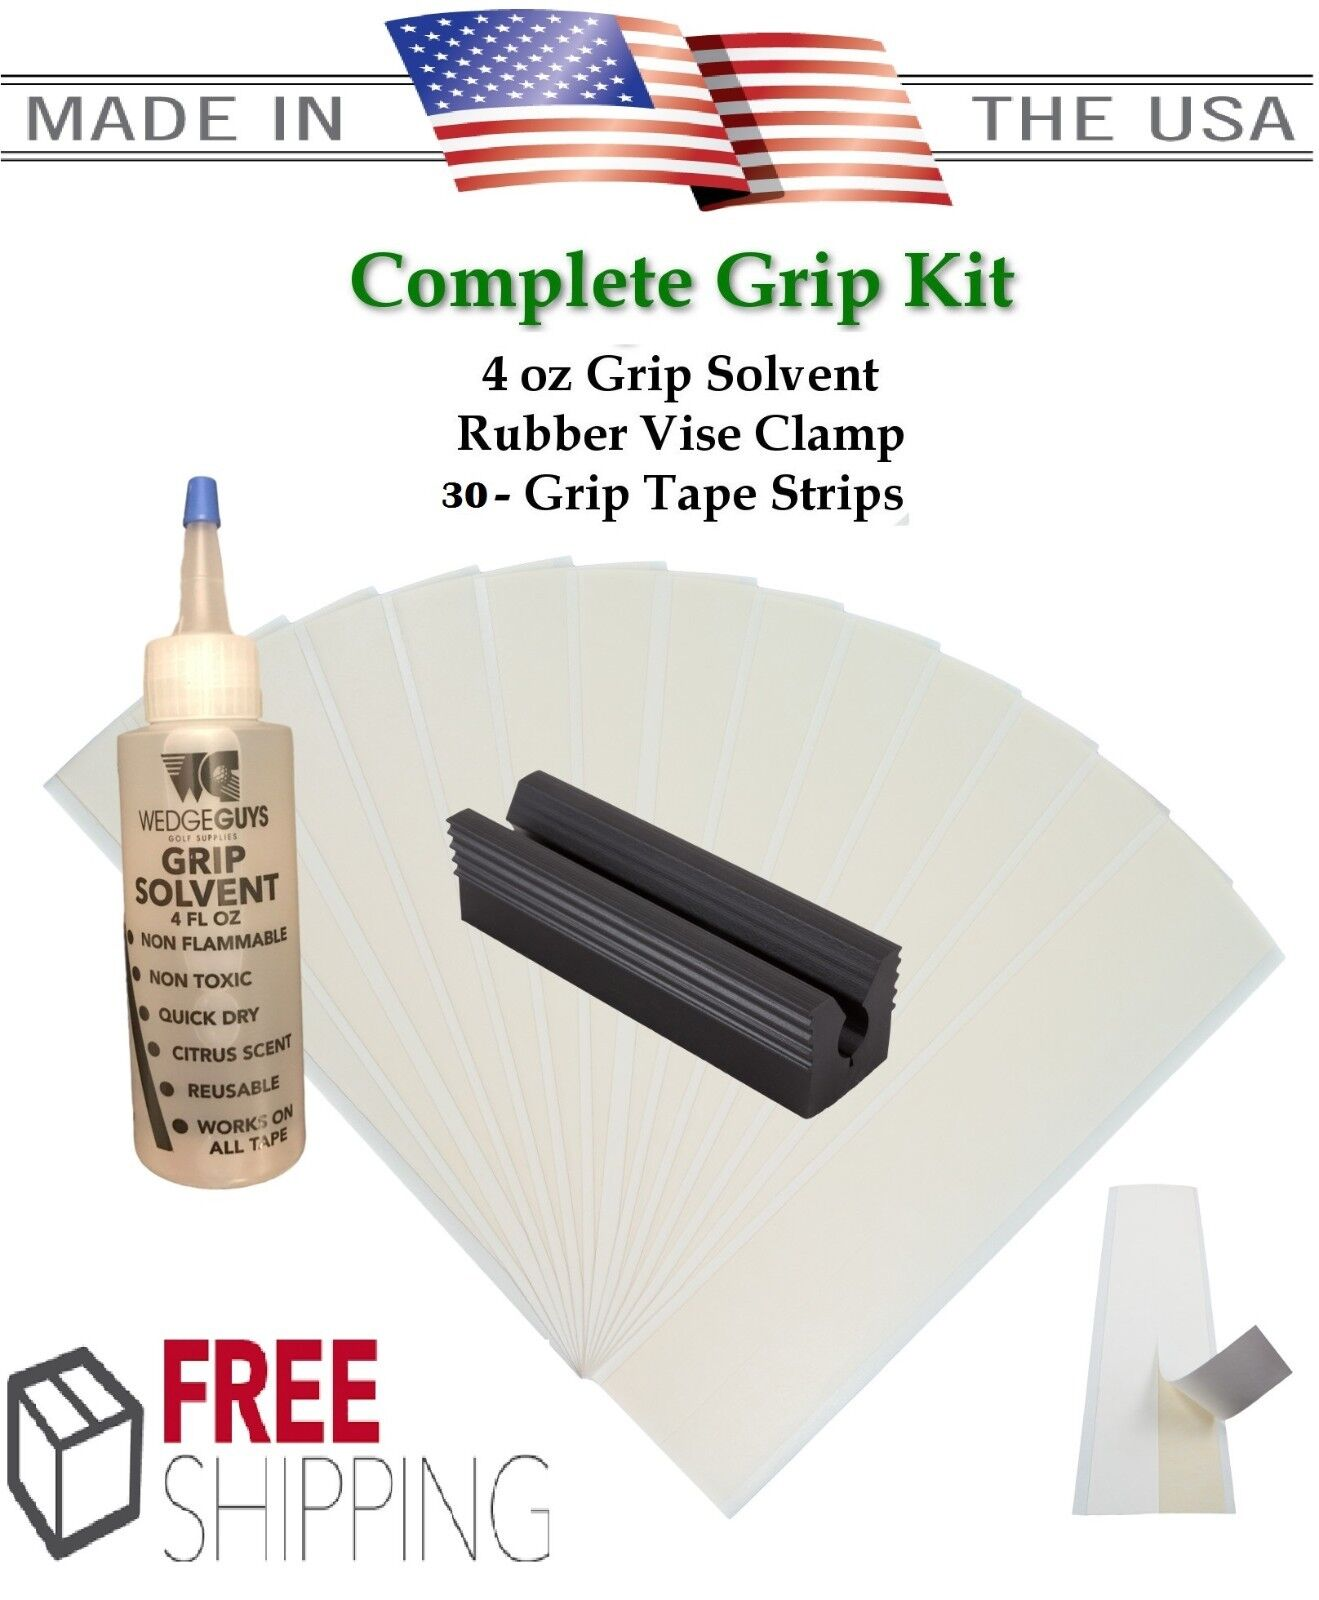 Golf Club GRIP KIT 30- Tape Strips, Vise Clamp, Solvent and